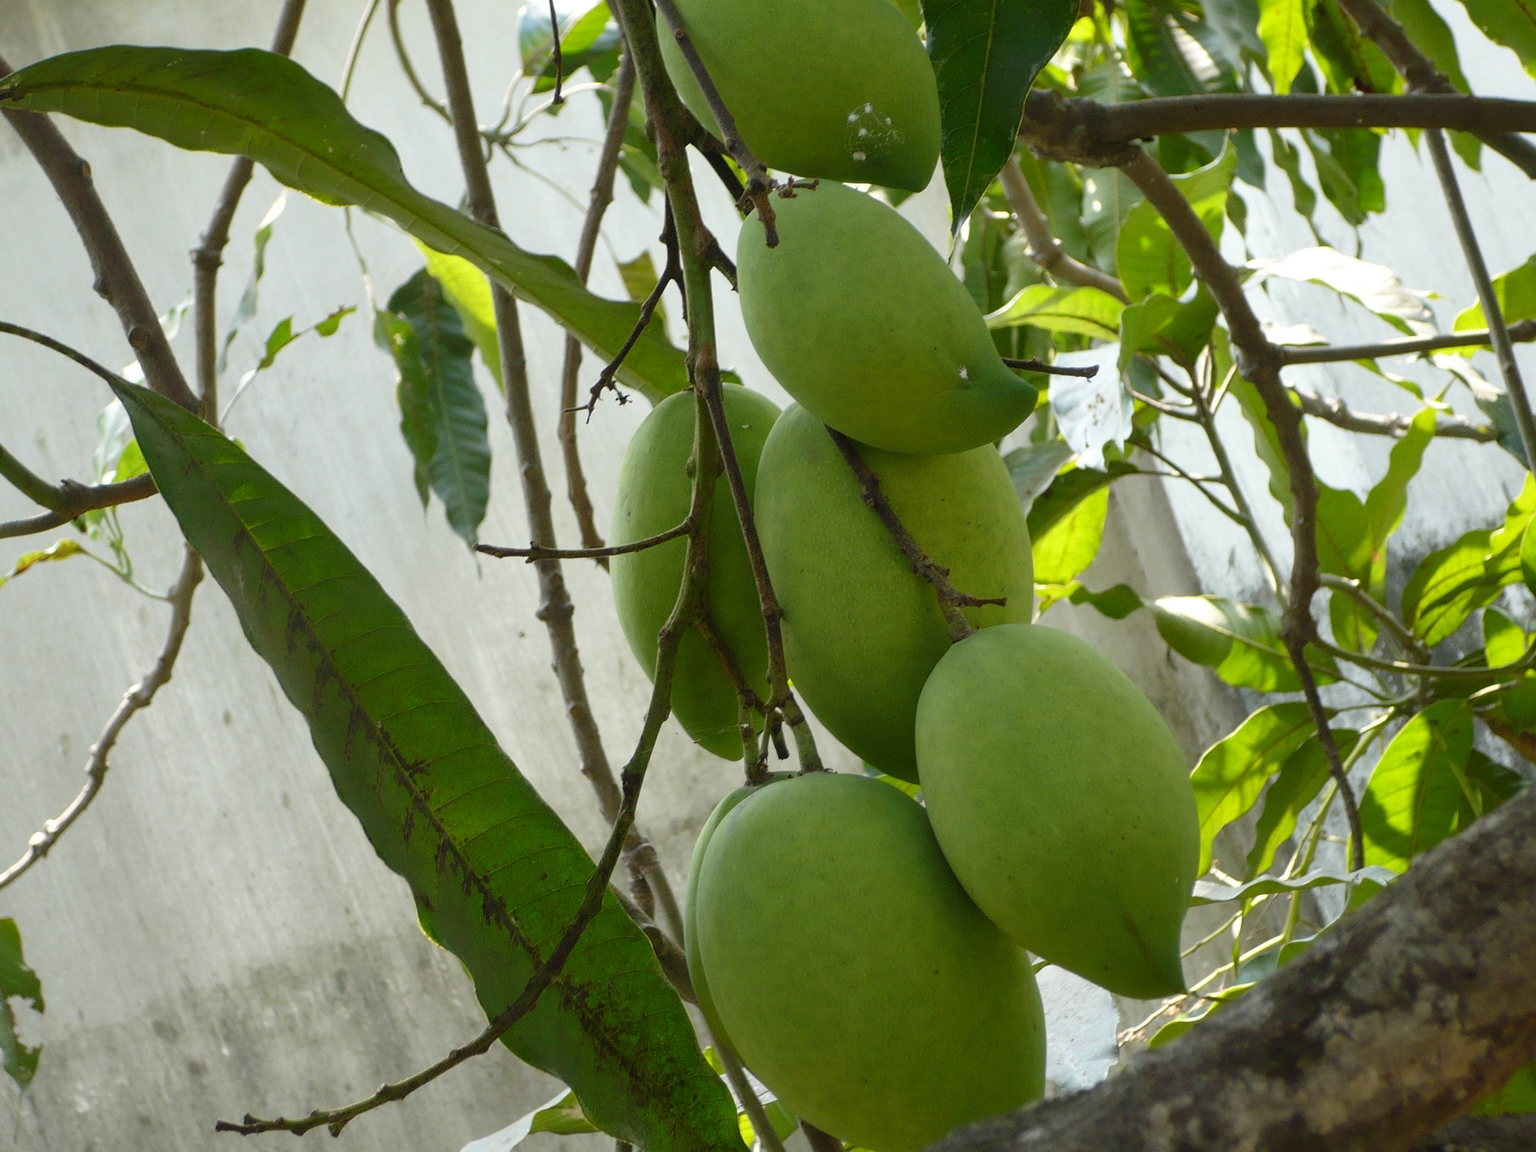 mangifera indica l Effects of different plant leaf extracts on postharvest life and quality of mango (mangifera indica l) ( vol-3,issue-2,march - april 2018) author: s shrestha, b pandey, bp mishra.